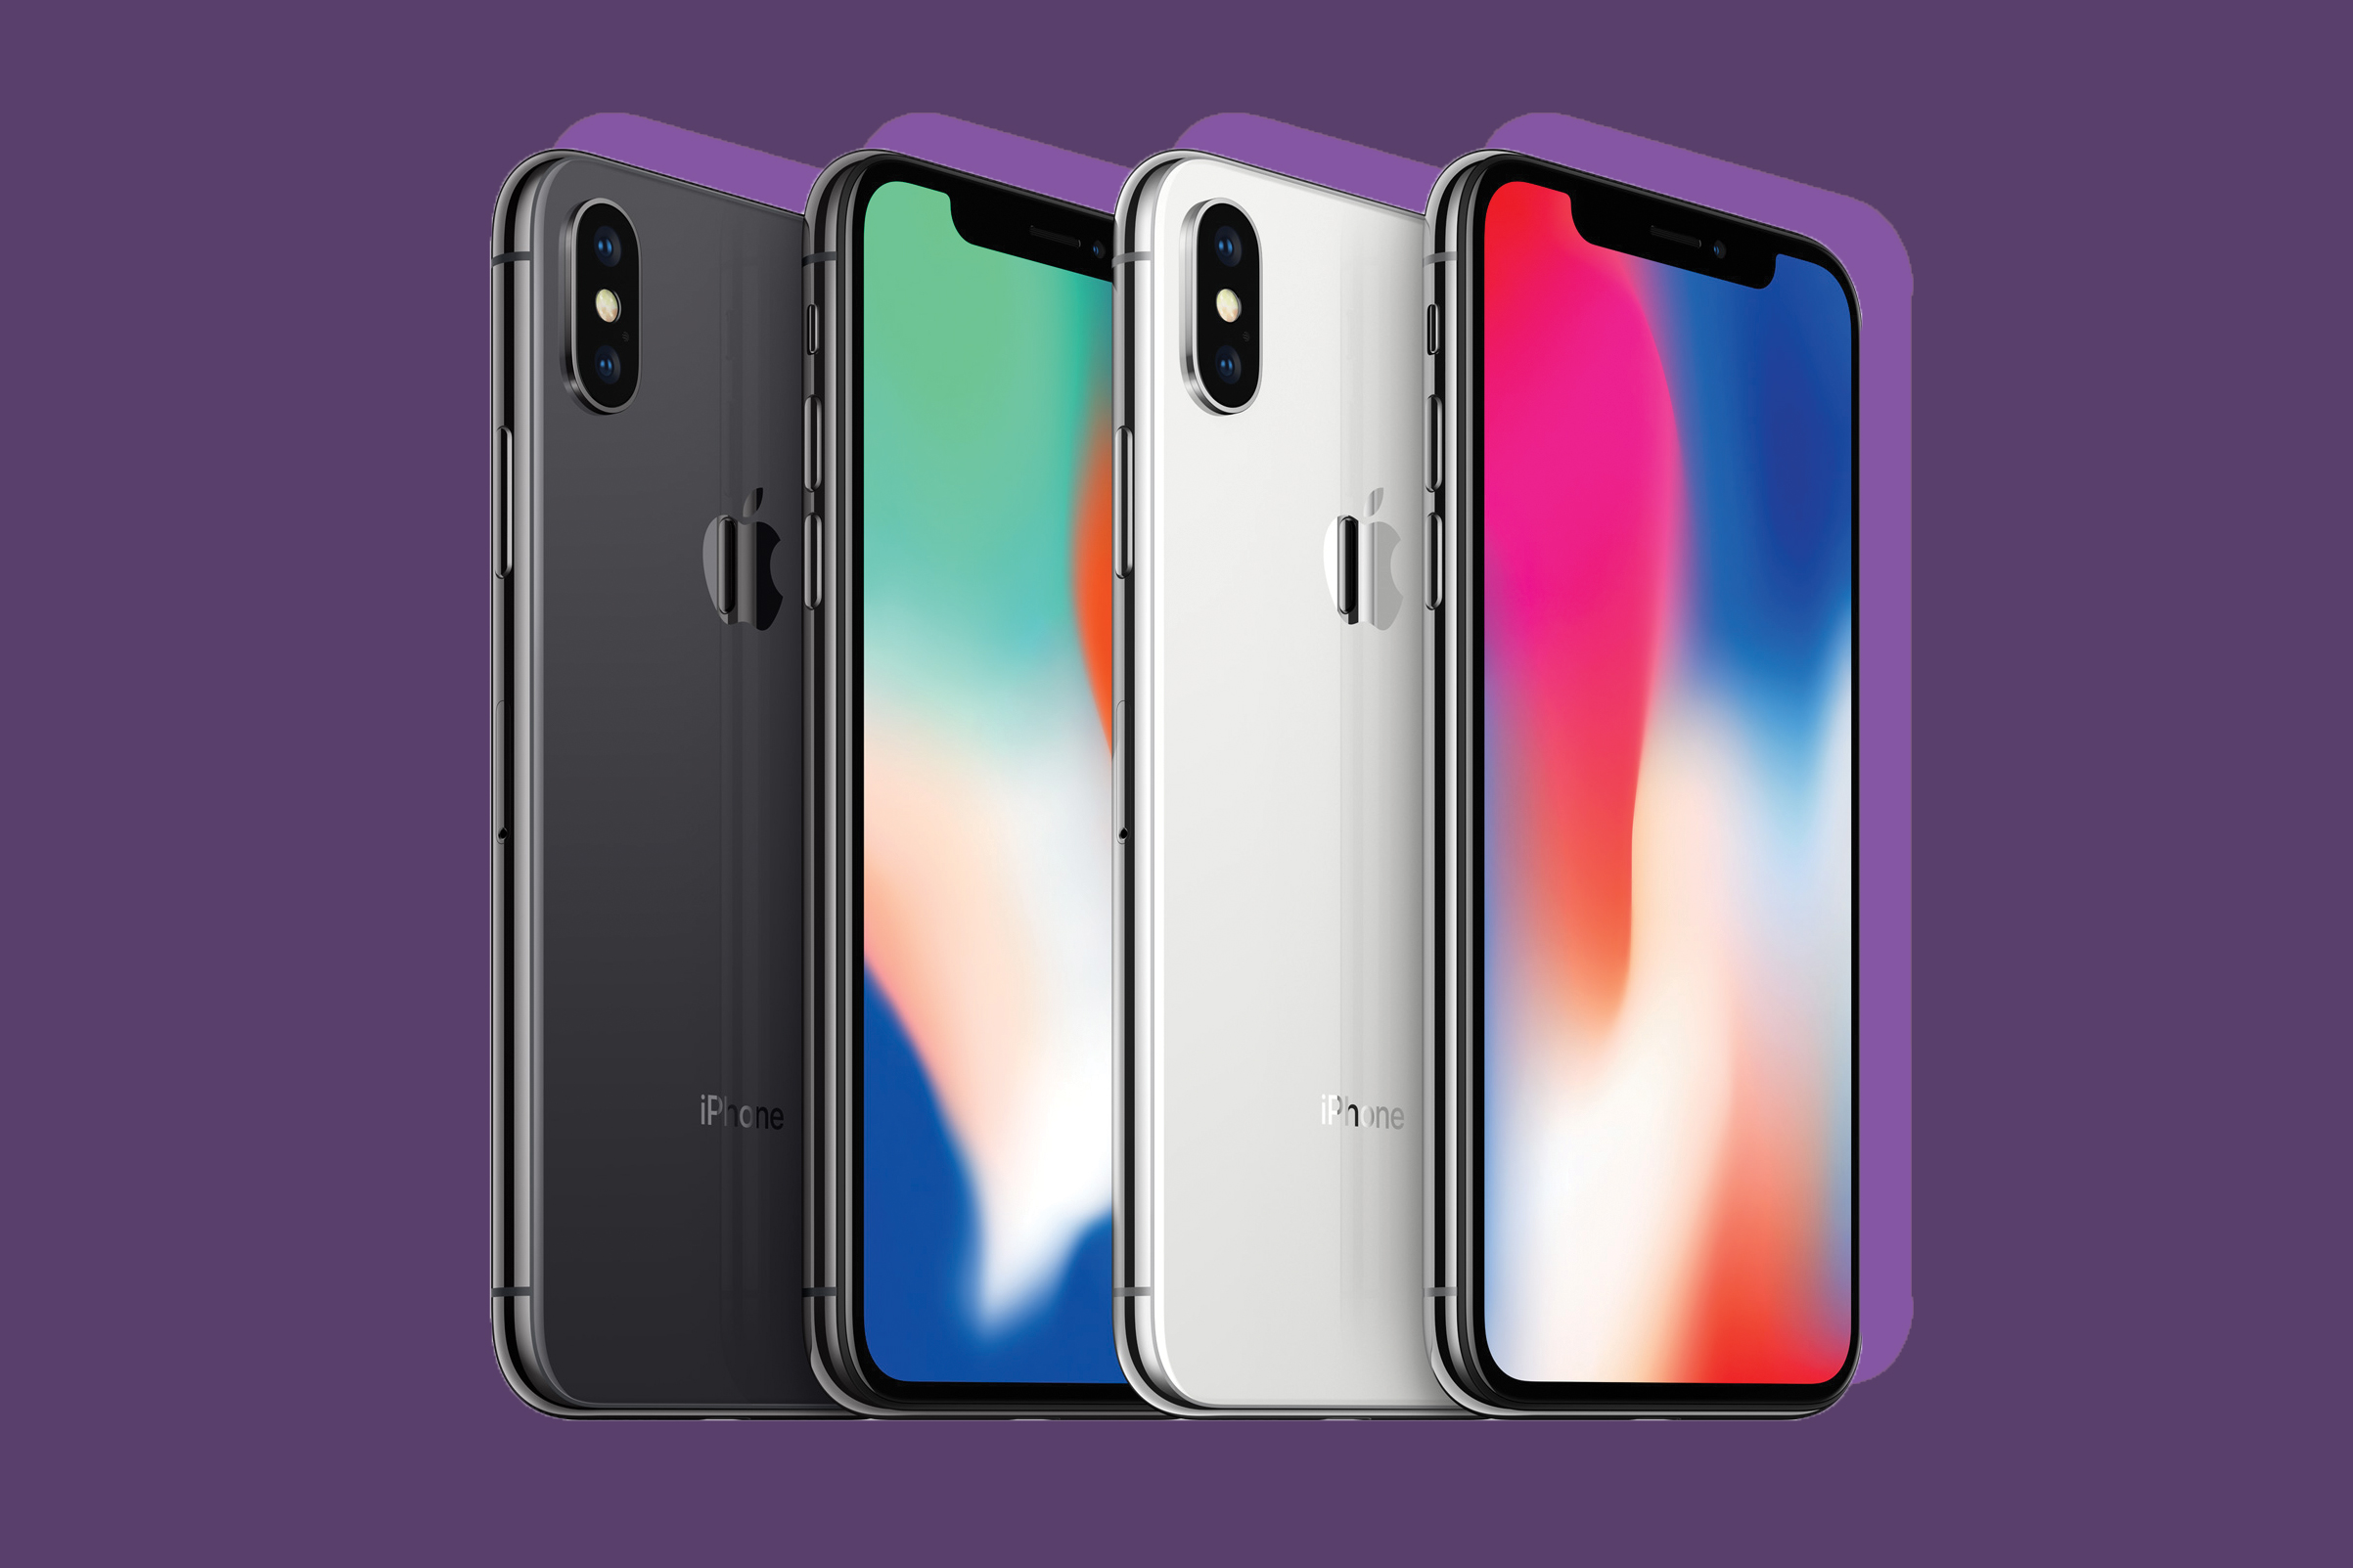 The Apple iPhone X is one of the best inventions of 2017